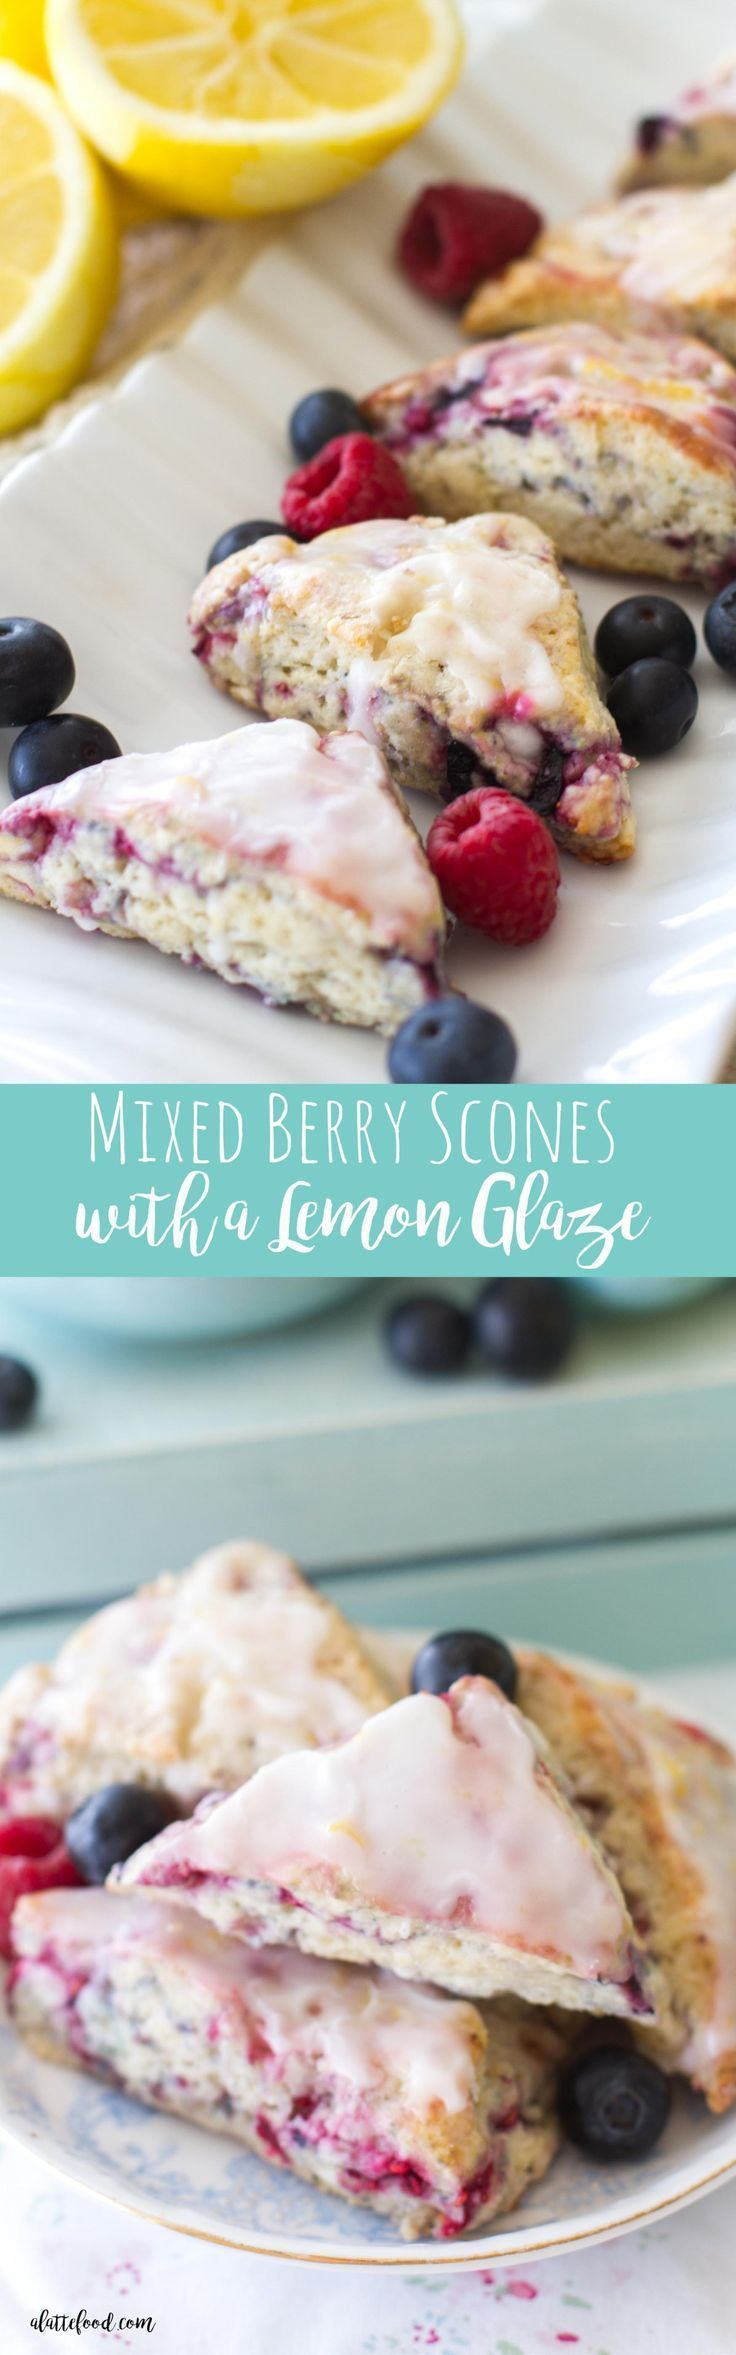 These mini mixed berry scones are full of blueberries and raspberries and drizzled with a sweet lemon glaze. A simple and elegant breakfast, brunch, or dessert!